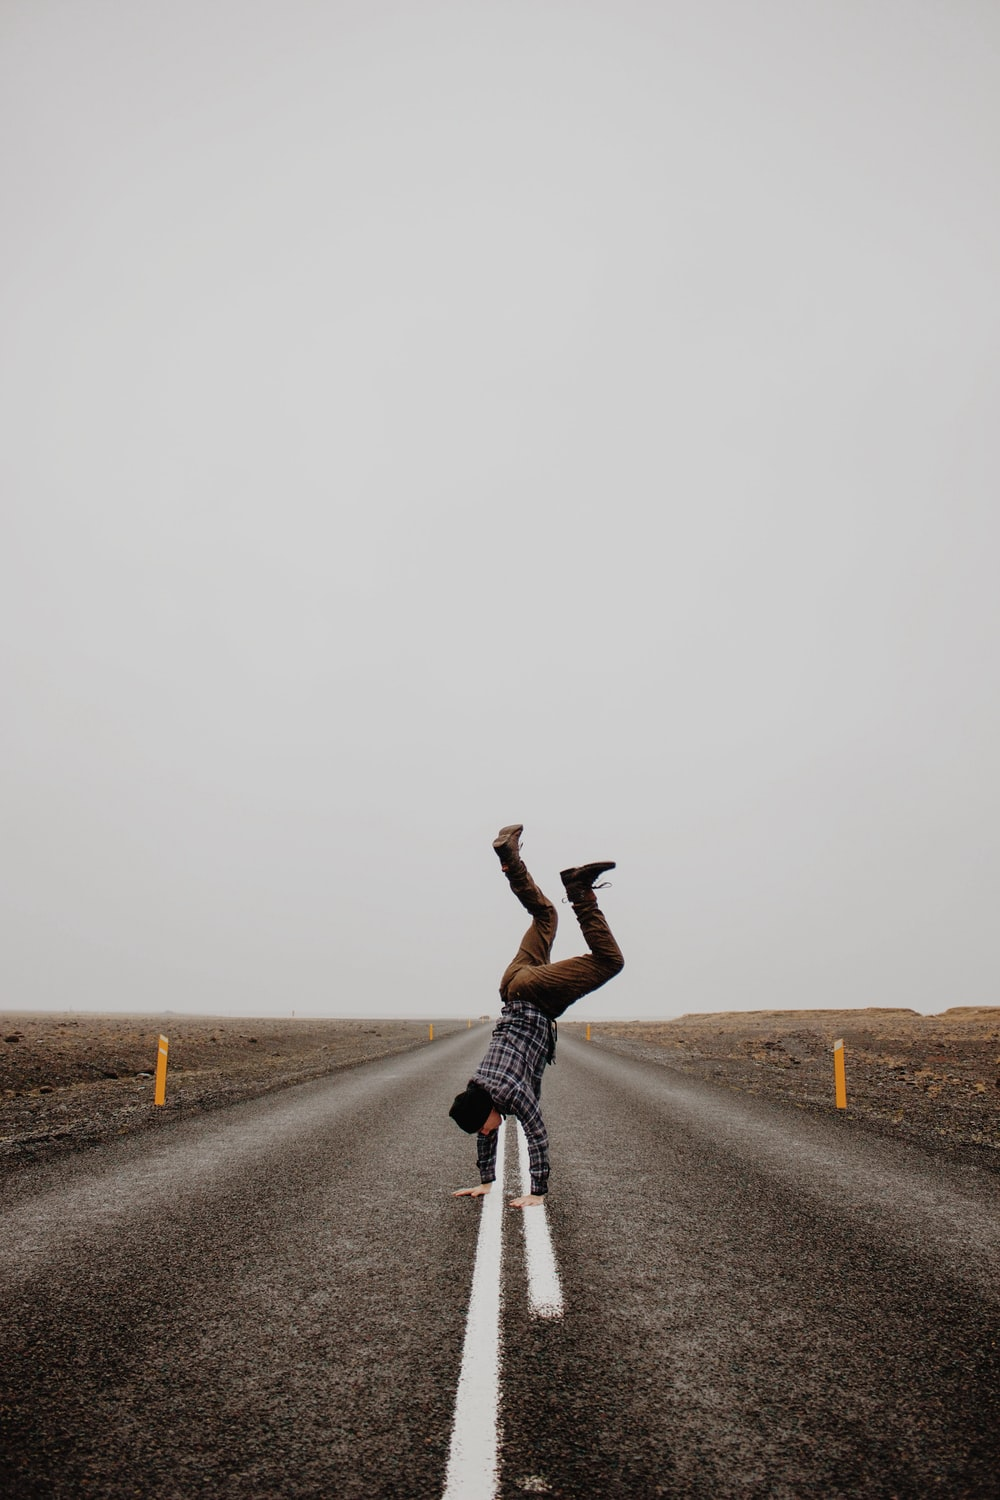 person hand standing on road during daytime